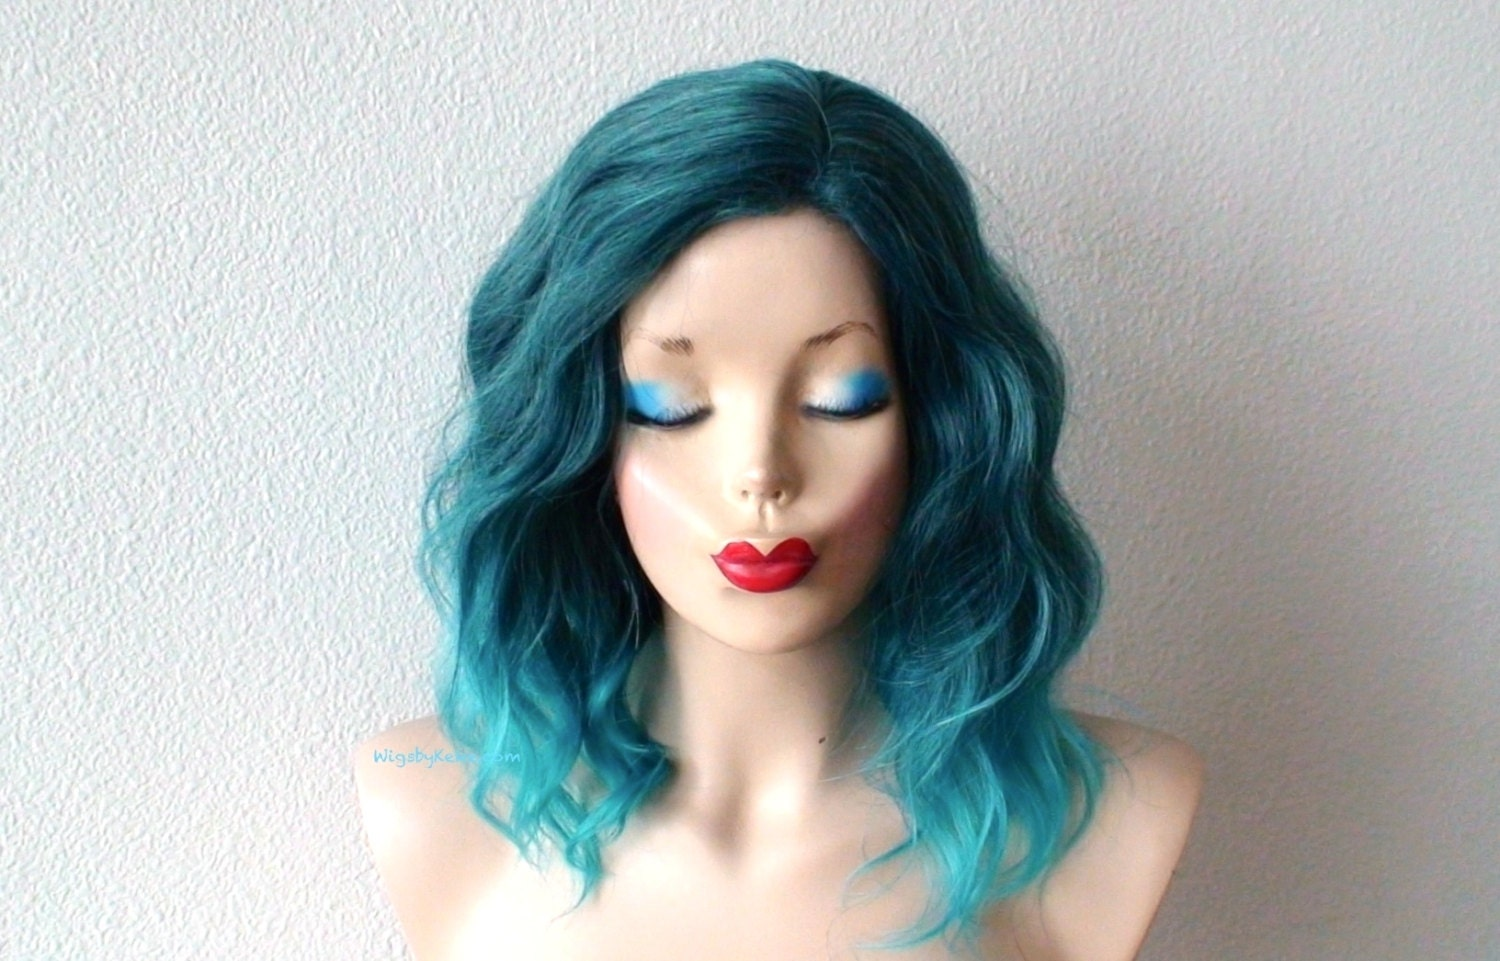 Ombre Wig. Pastel Teal Ombre Wig. Beach Wave Hairstyle Wig